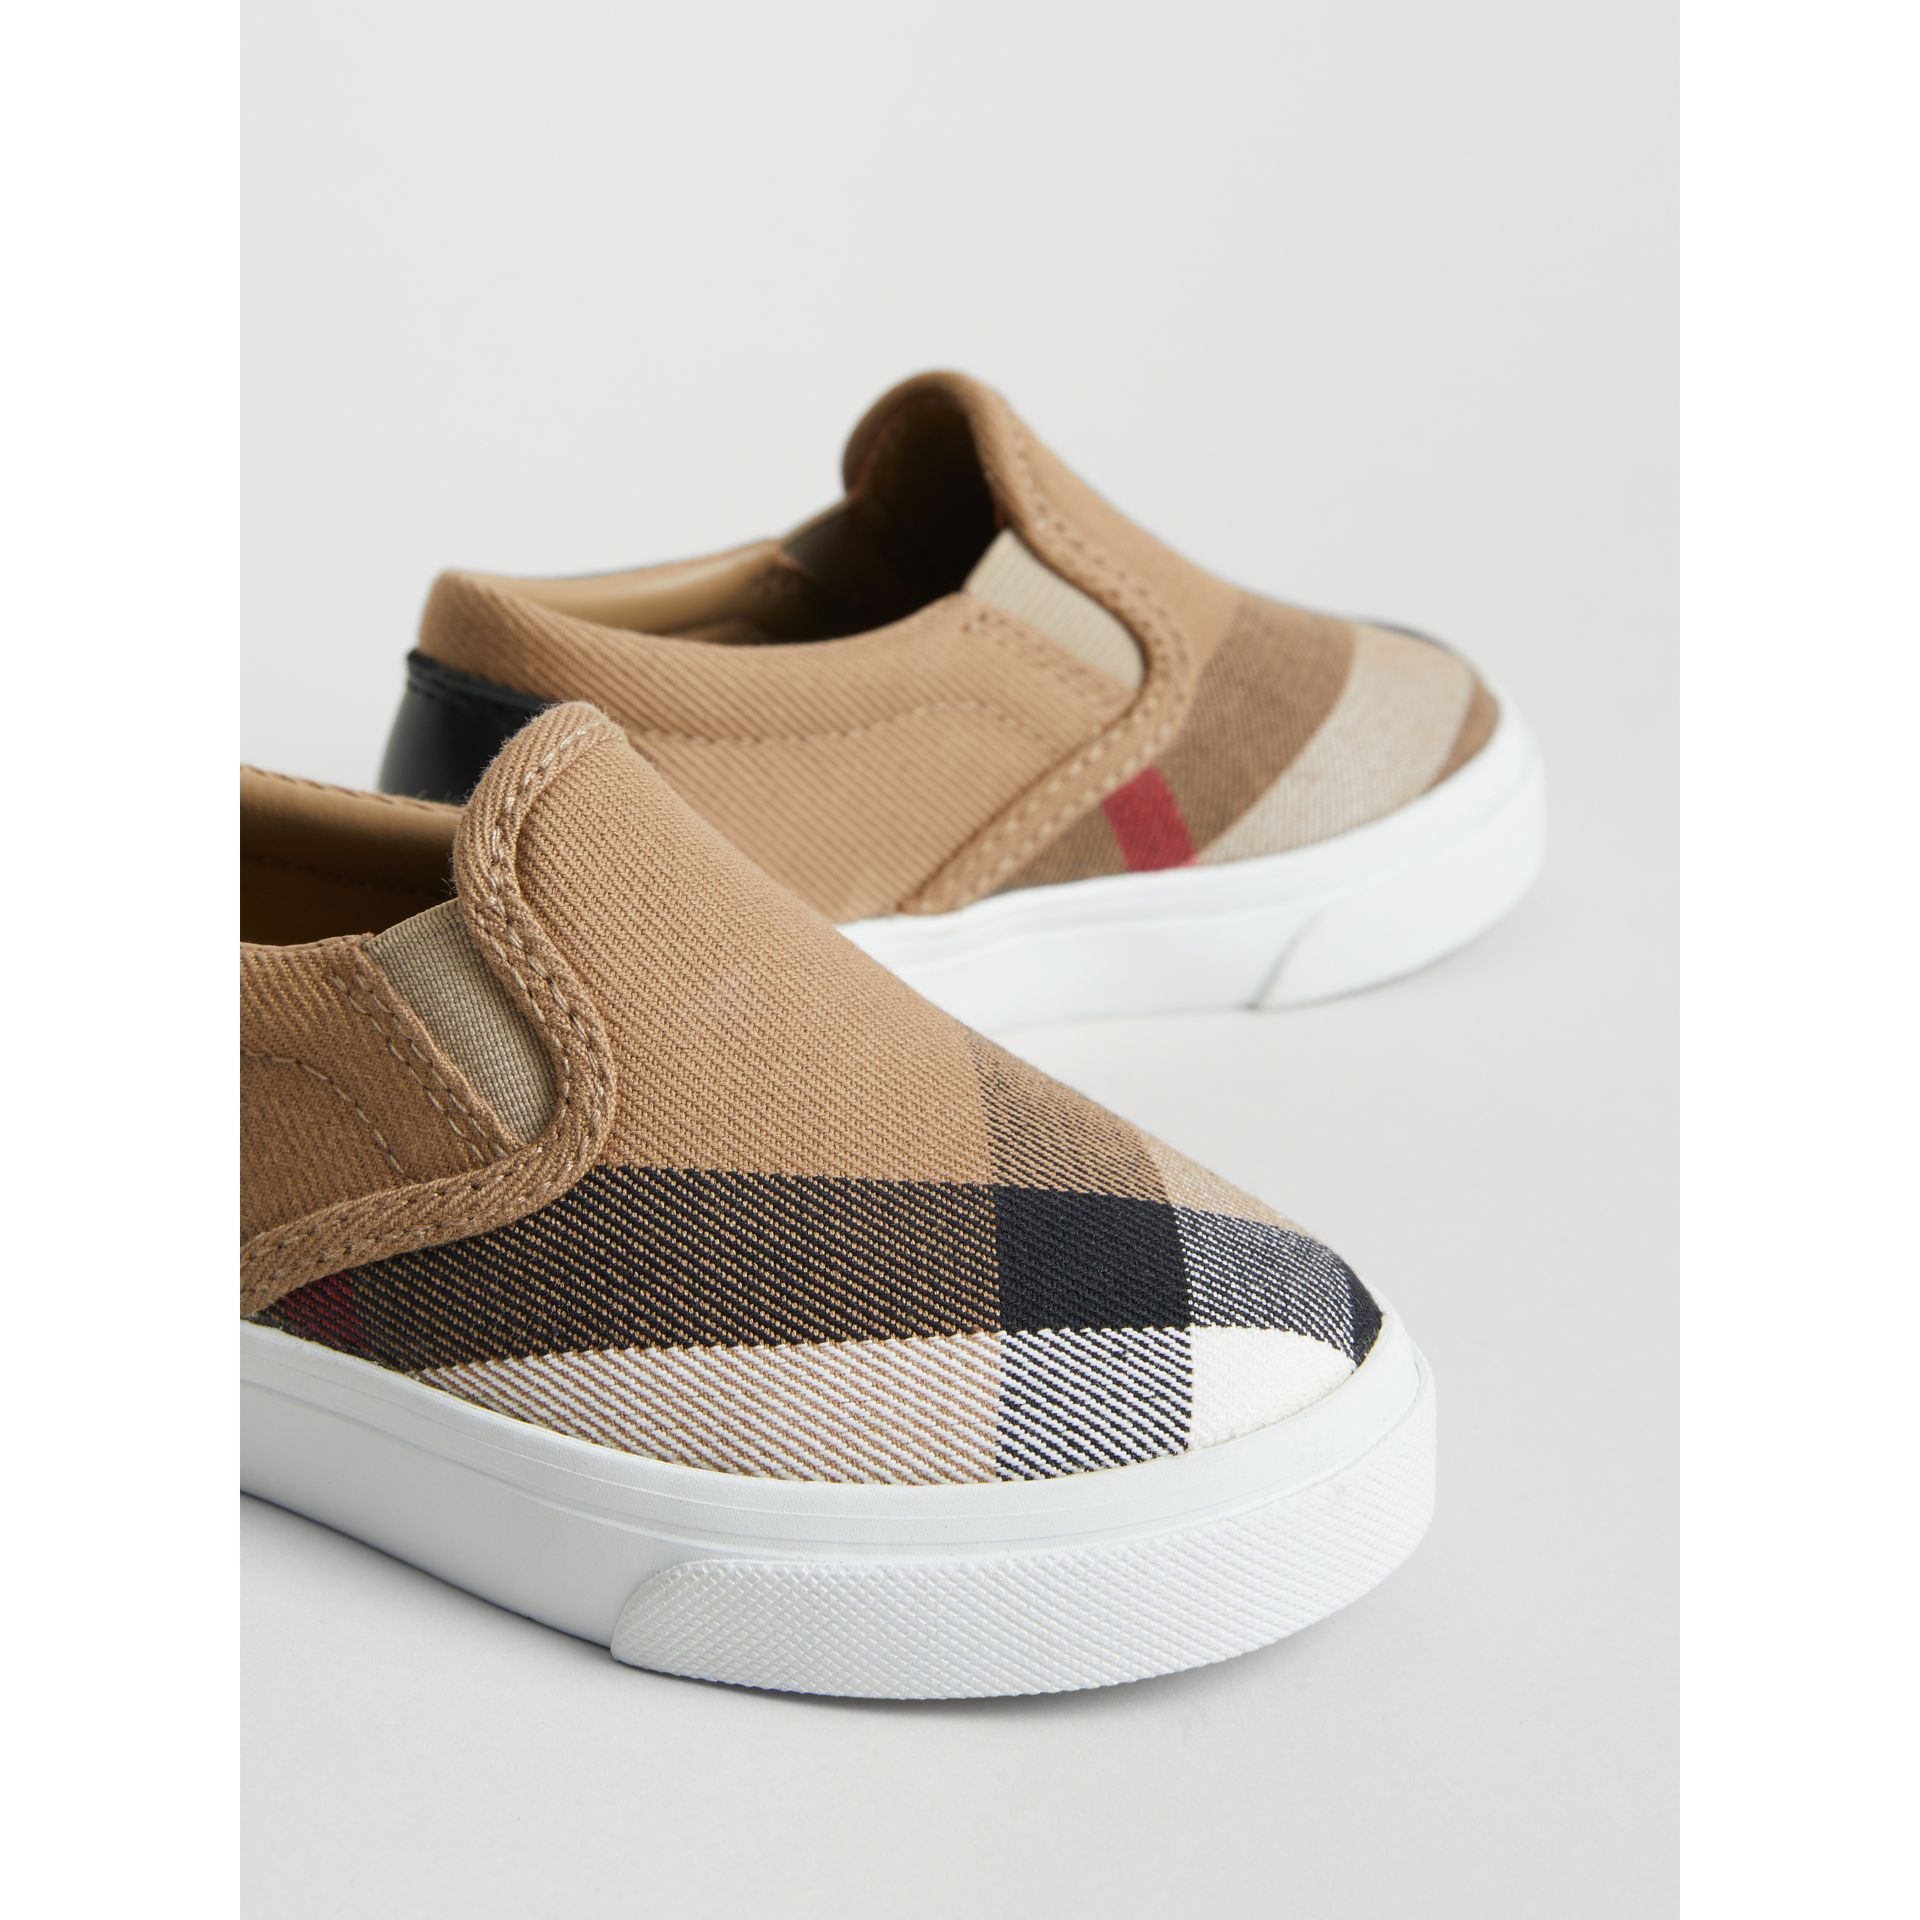 House Check and Leather Slip-on Sneakers in Classic/optic White | Burberry Australia - gallery image 1